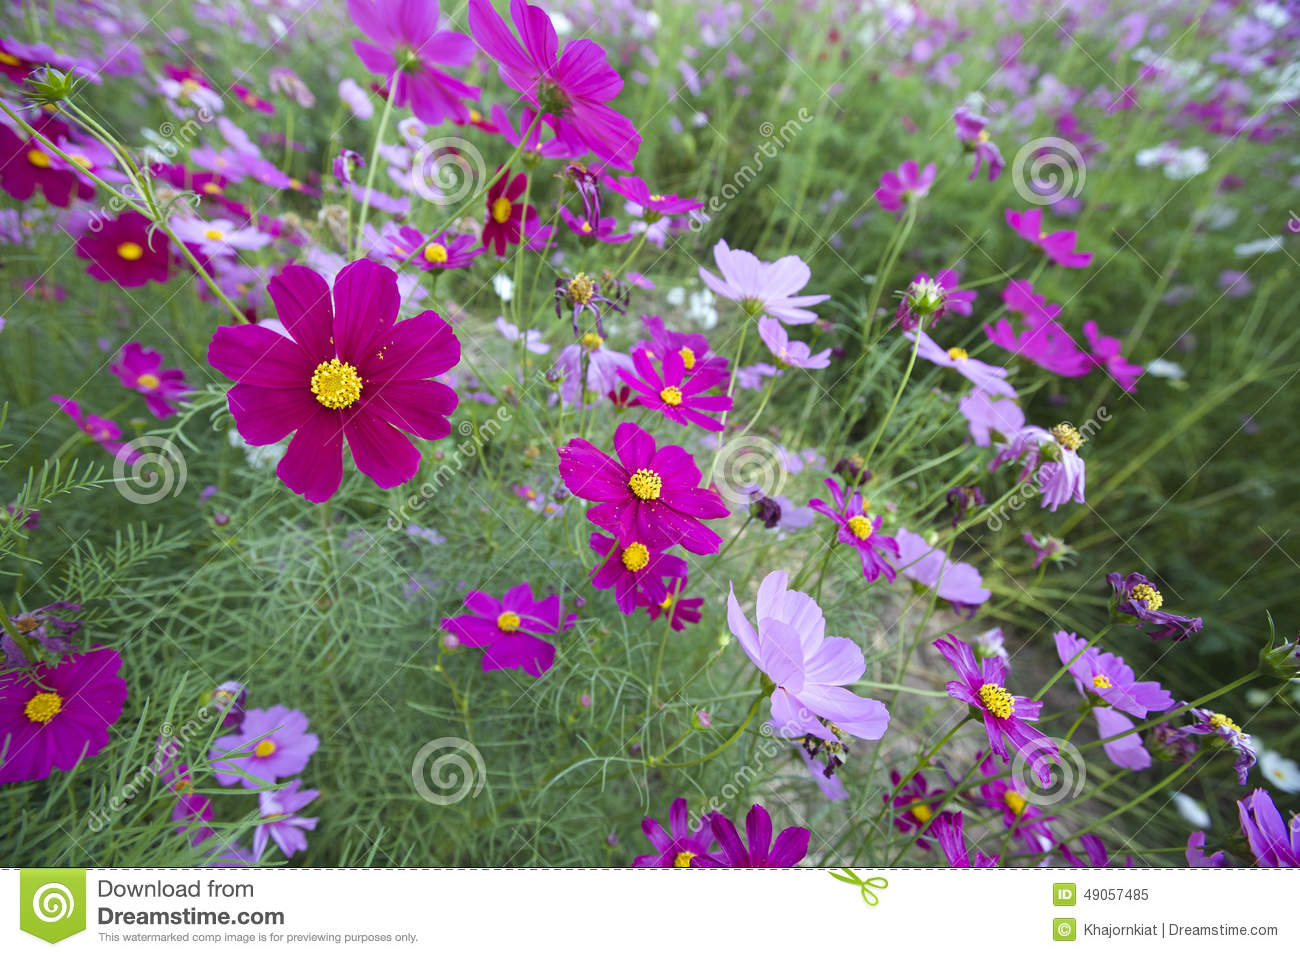 Cosmos Flowers Stock Image Image Of Outdoors Nature 49057485